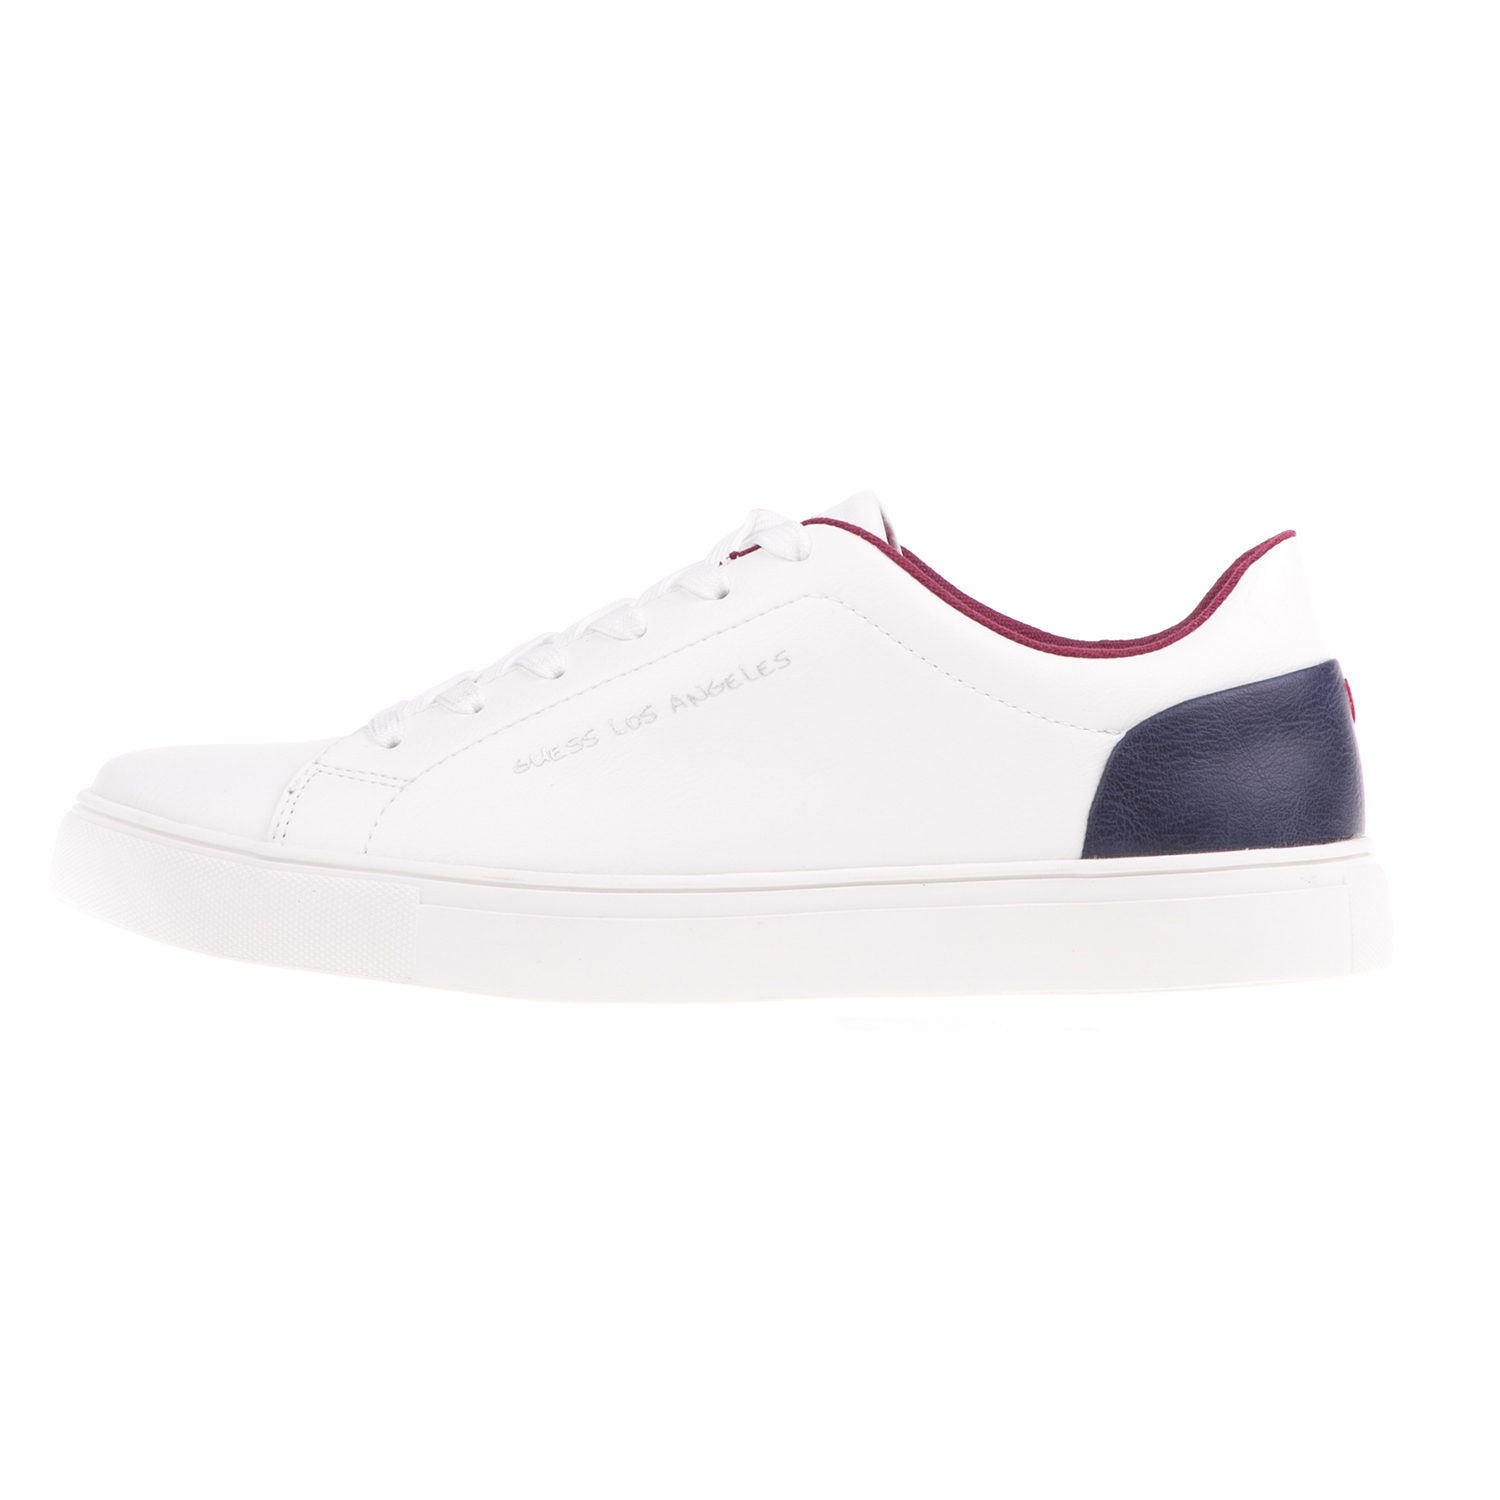 2f5a002ff92 -50% Factory Outlet GUESS – Ανδρικά sneakers GUESS LUISS λευκά